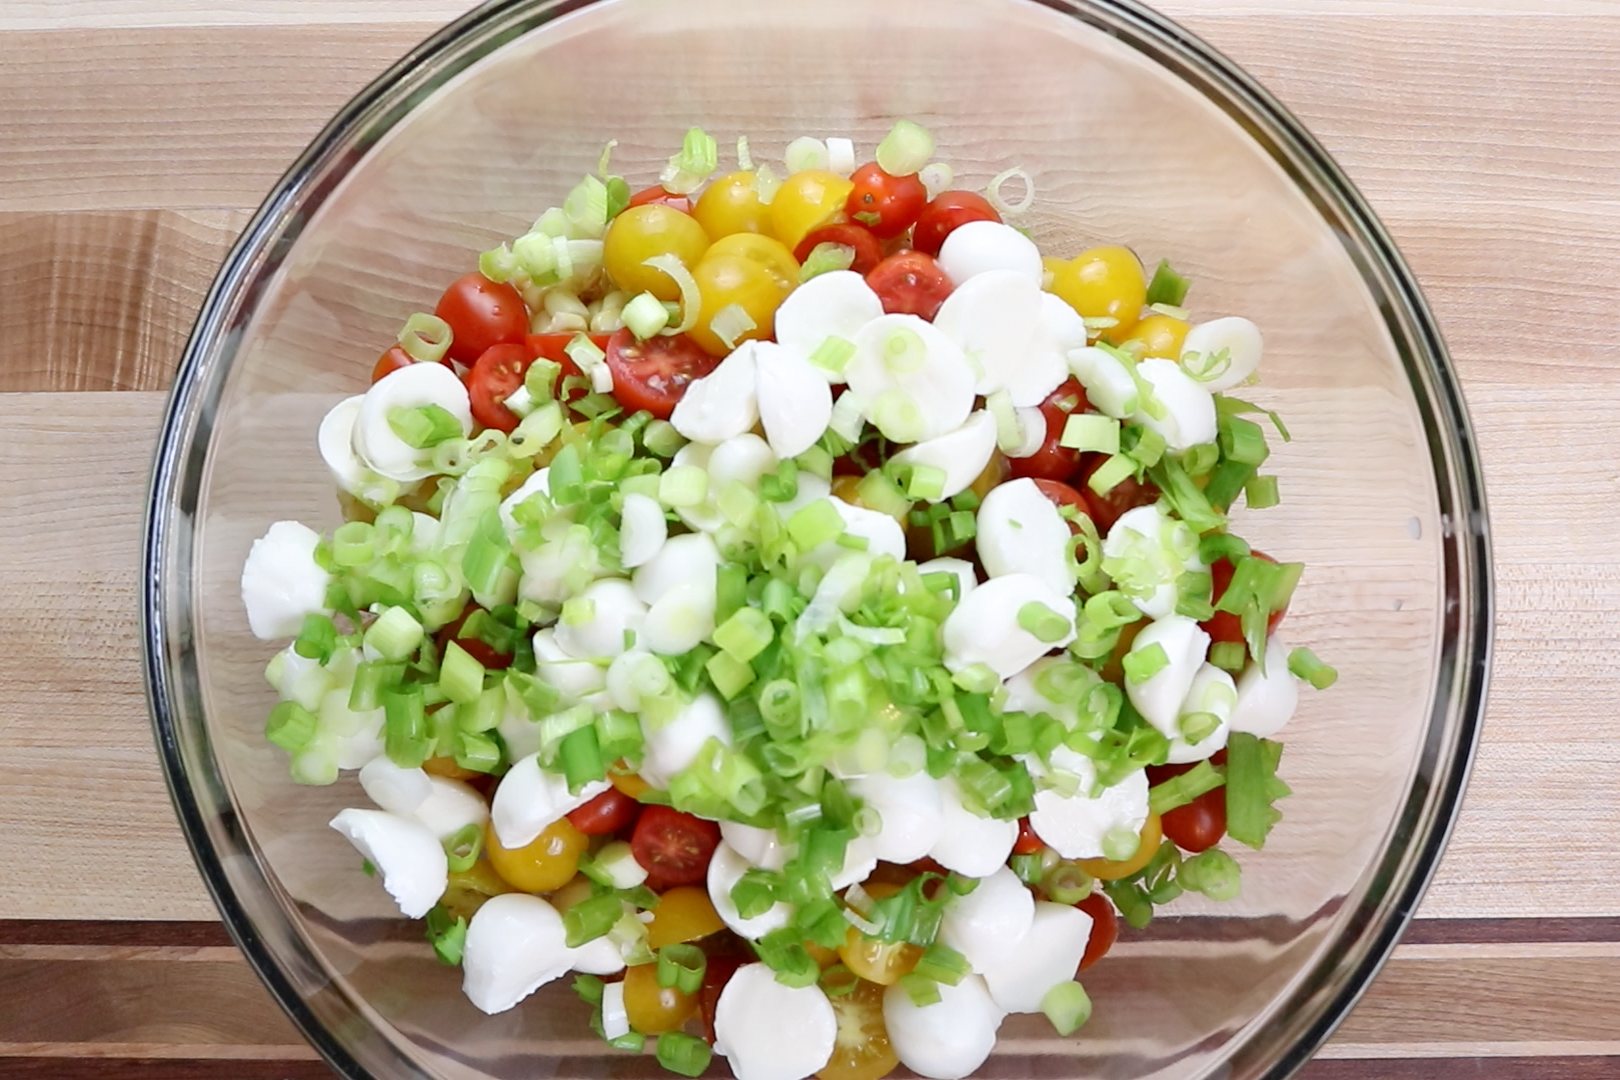 6. In a large bowl combine corn, tomatoes, mozzarella and green onions. -